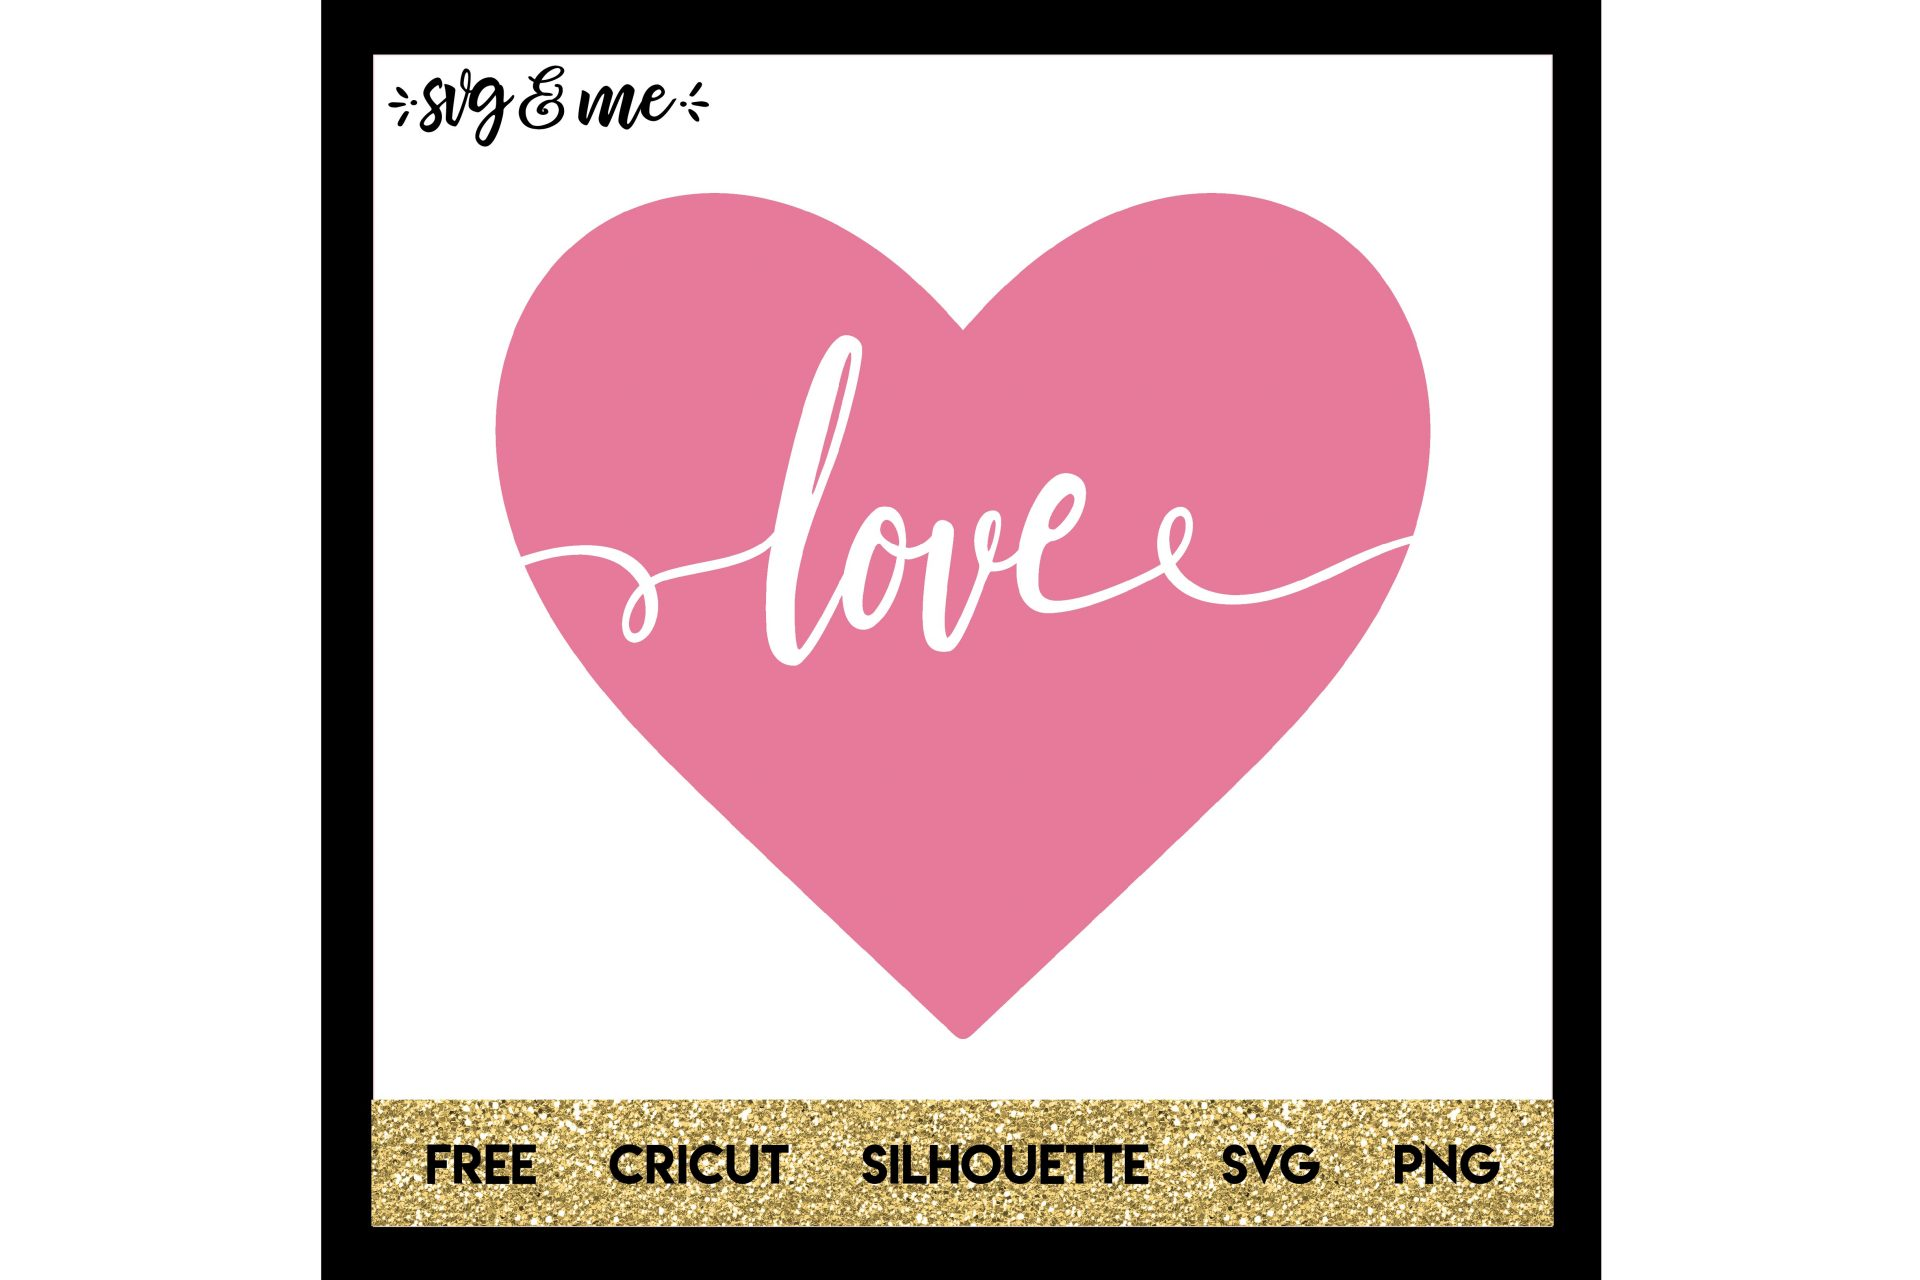 Free Svg Cut File For Cricut Silhouette And More Love Heart Cut